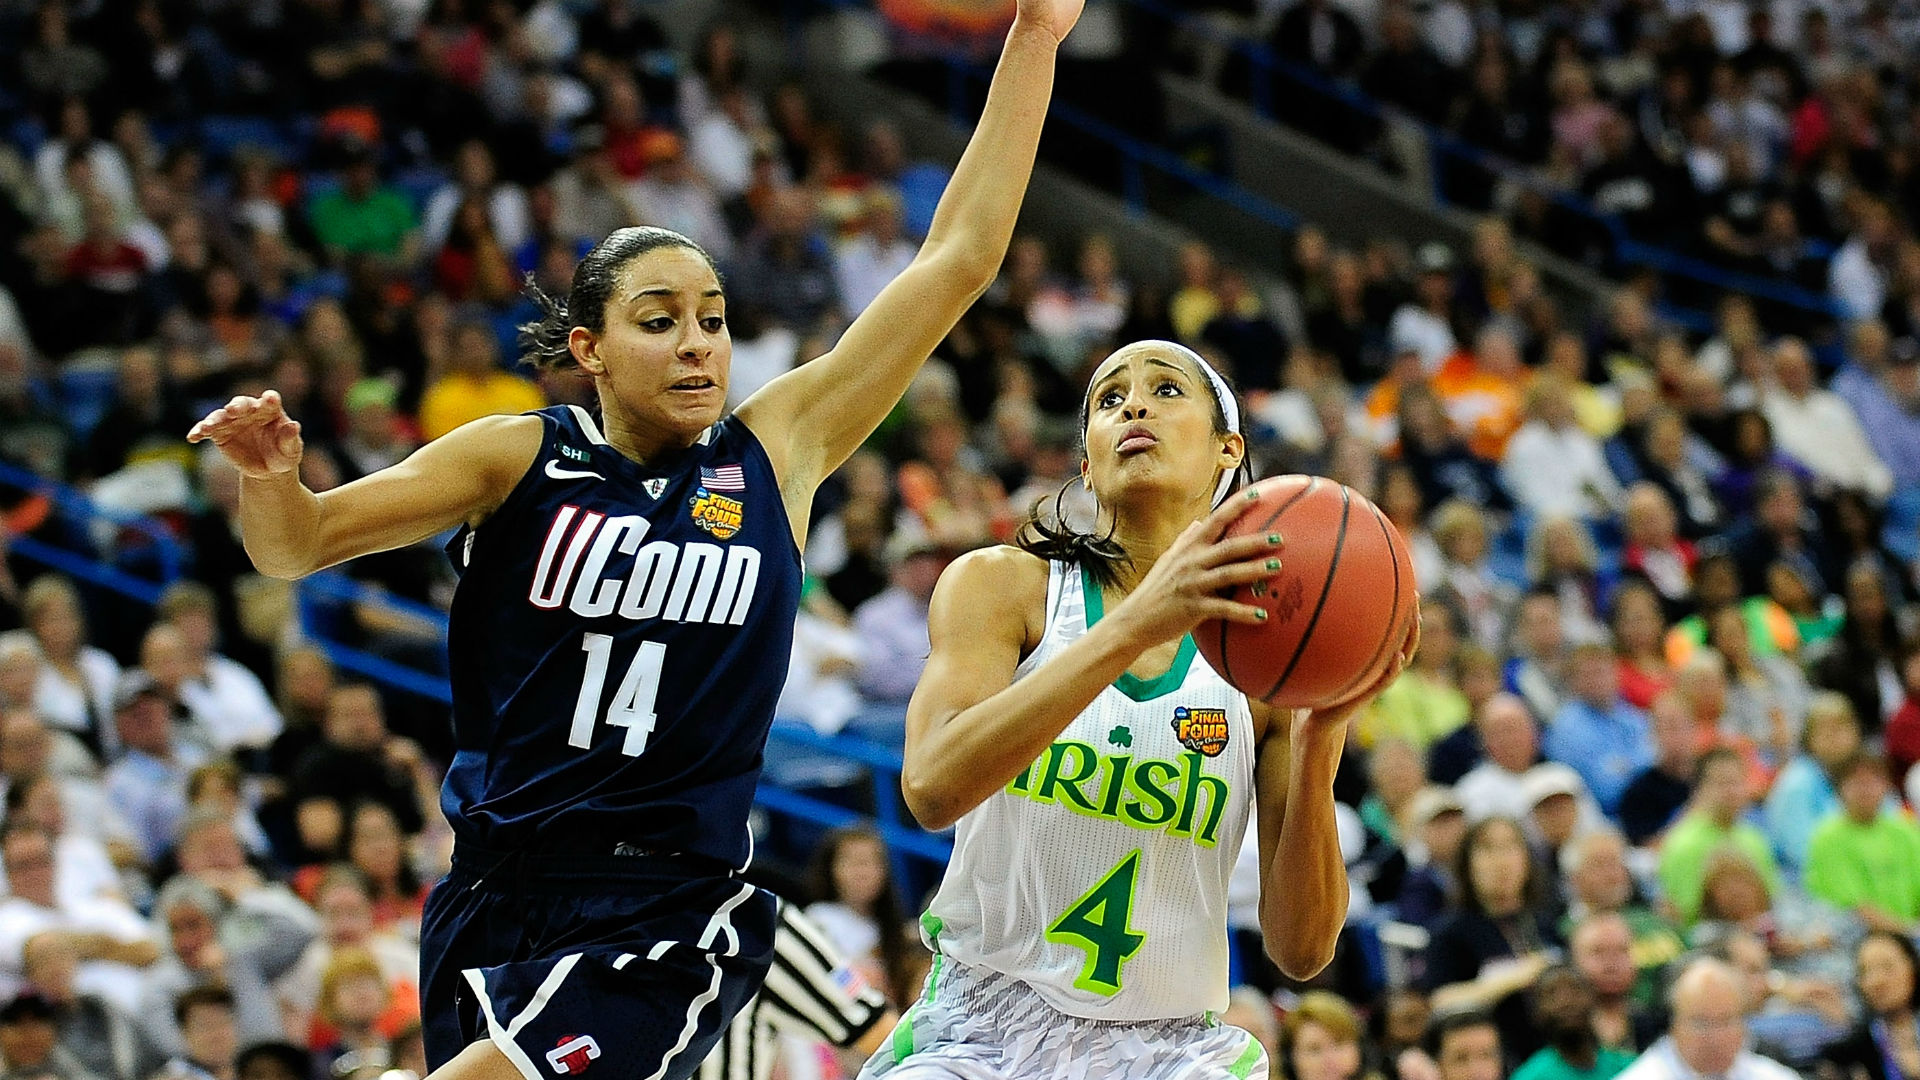 e79a188aaea5 Q+A  Skylar Diggins talks UConn s dominance and Candice Wiggins  comments  on heterosexuals in the WNBA